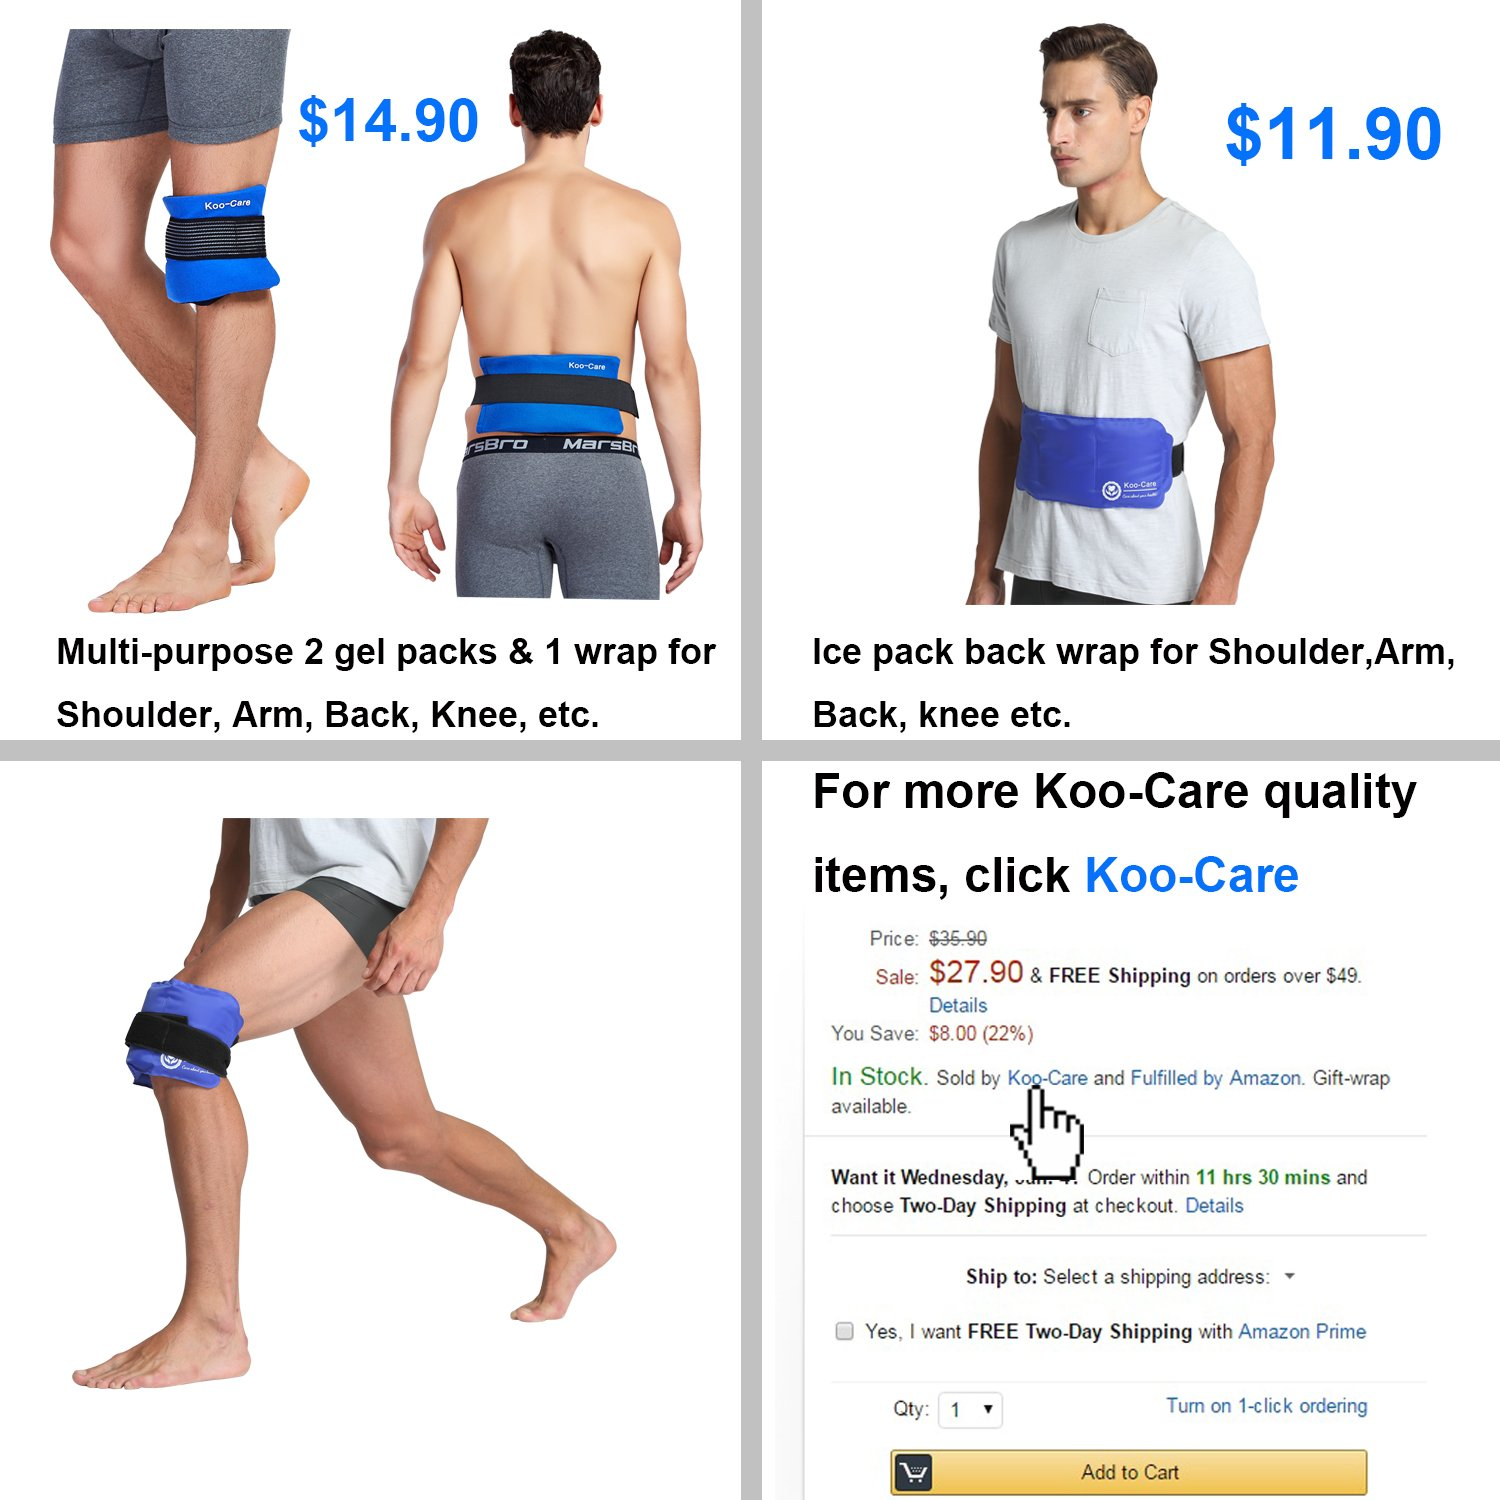 Koo-Care Large Flexible Gel Ice Pack & Wrap with Elastic Straps for Hot Cold Therapy - Great for Sprains, Muscle Pain, Bruises, Injuries - 11'' x 14'')